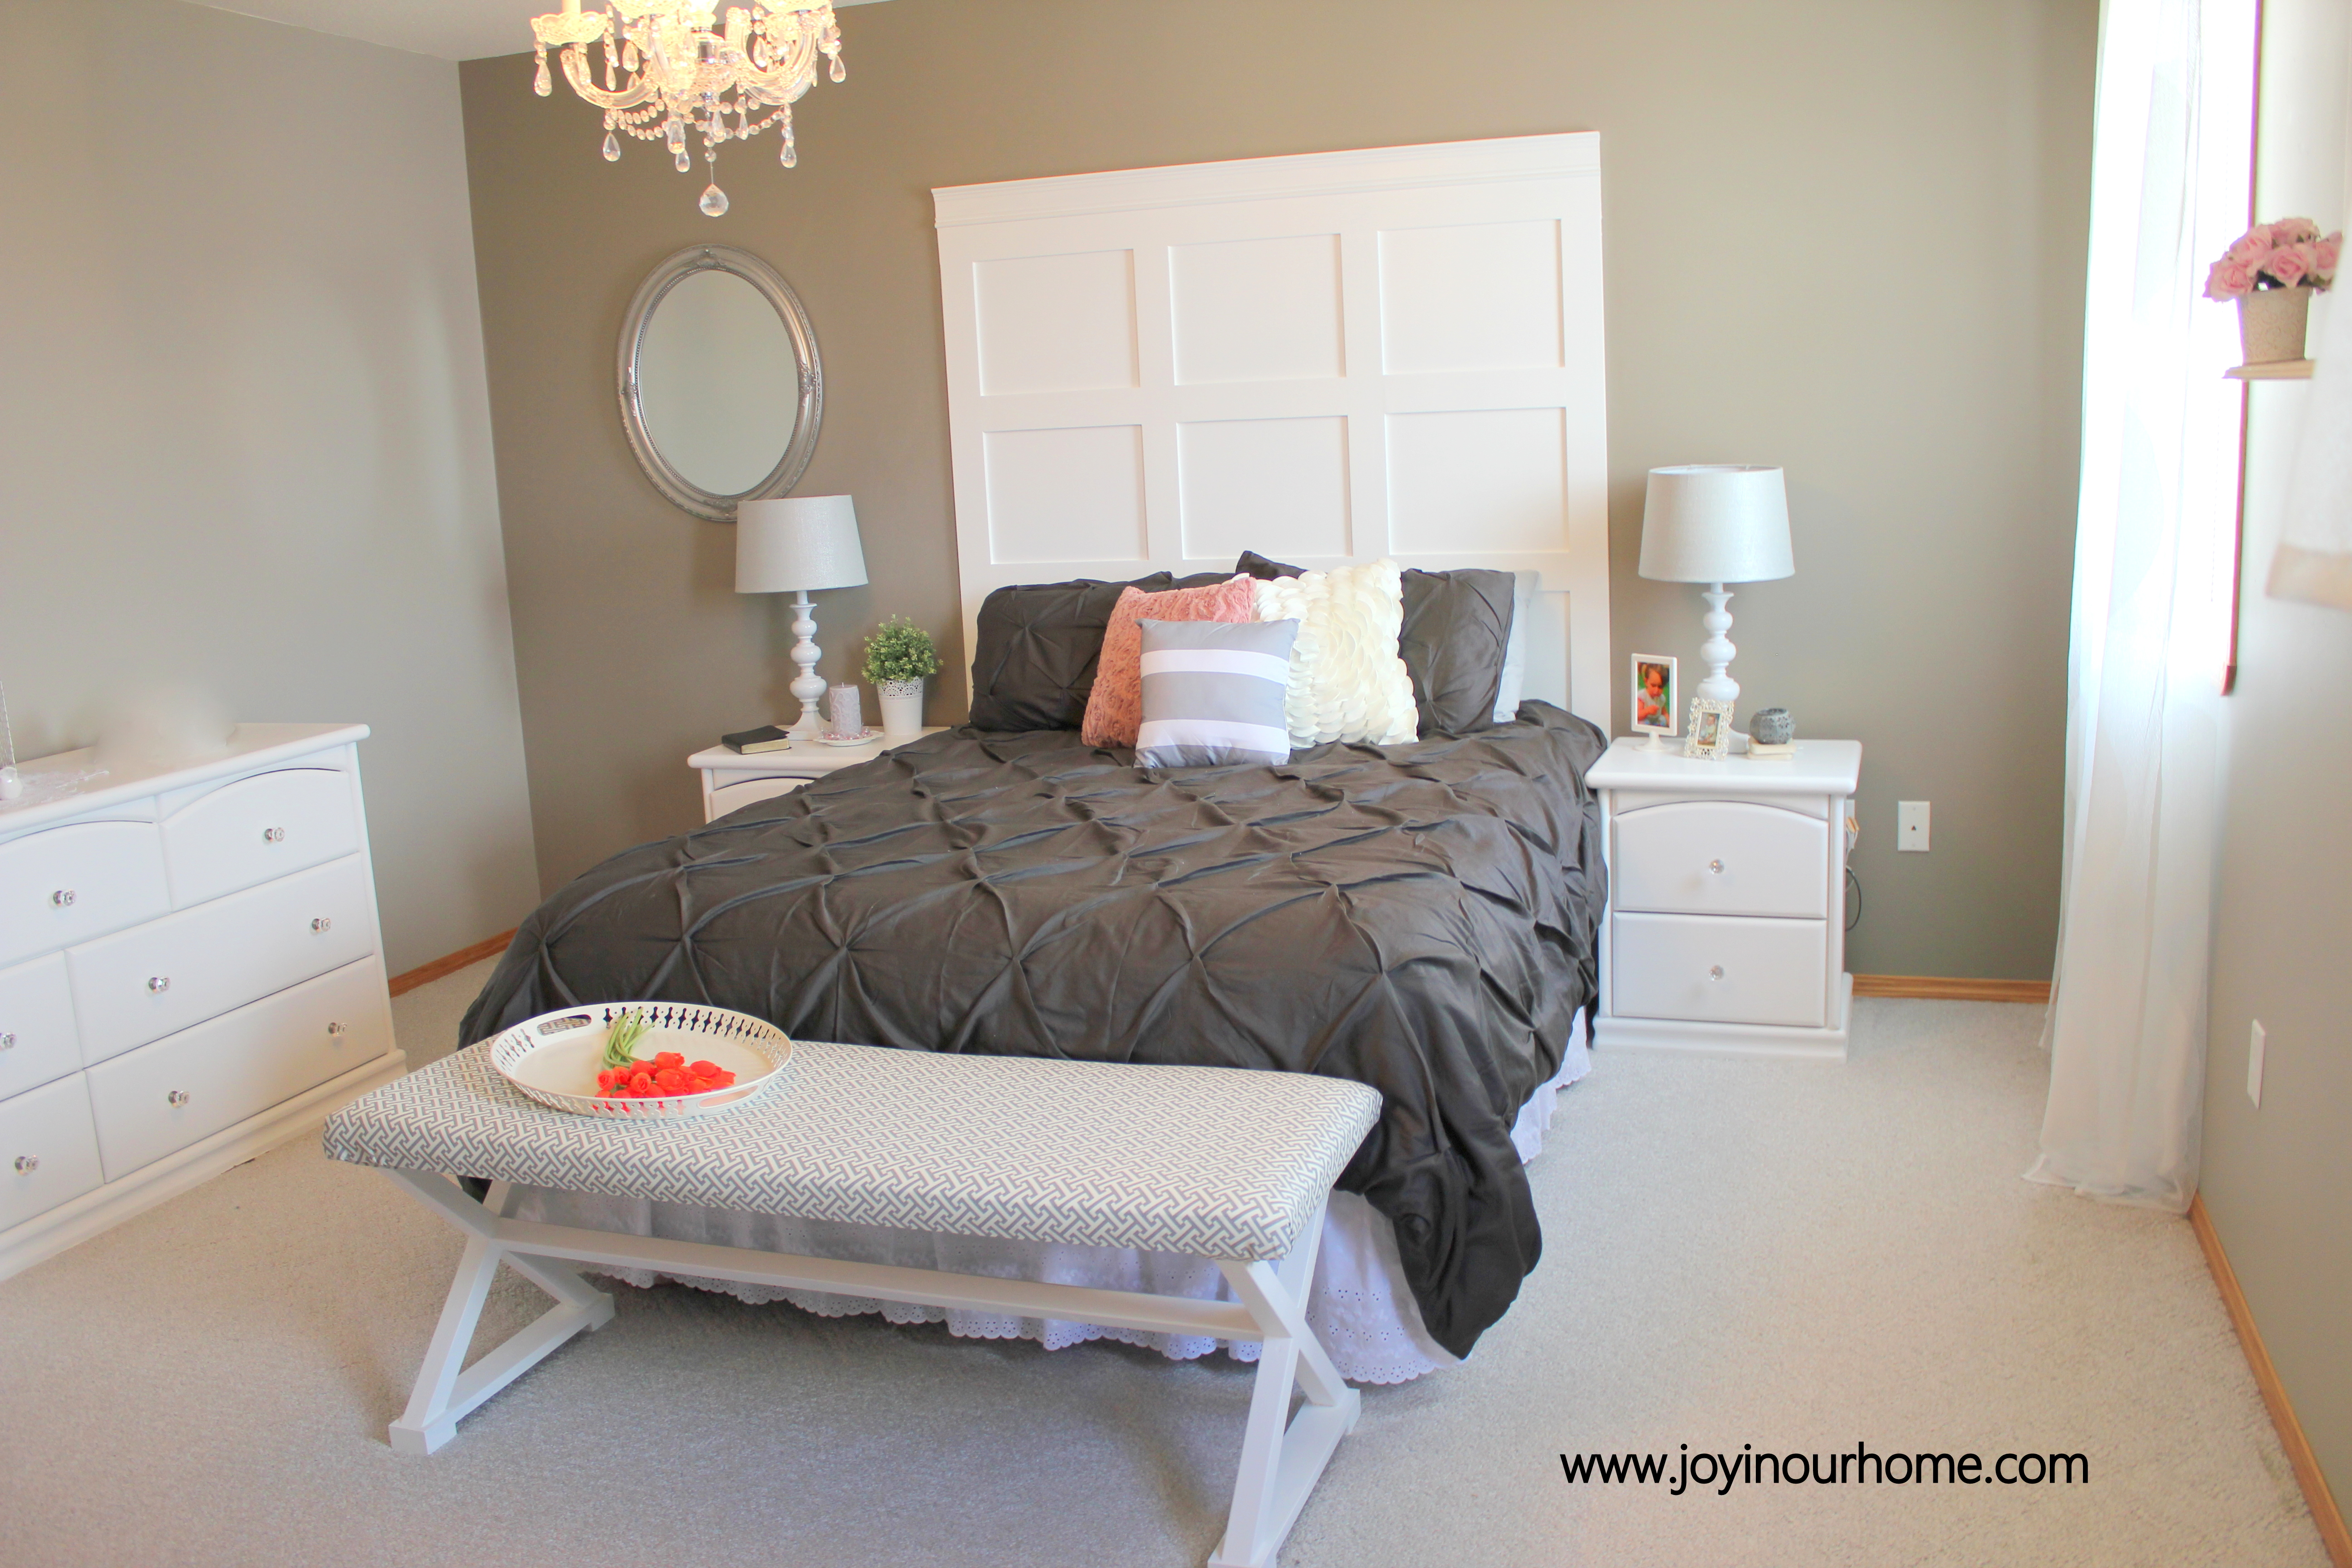 How To Make a Board and Batten Headboard | Joy in Our Home